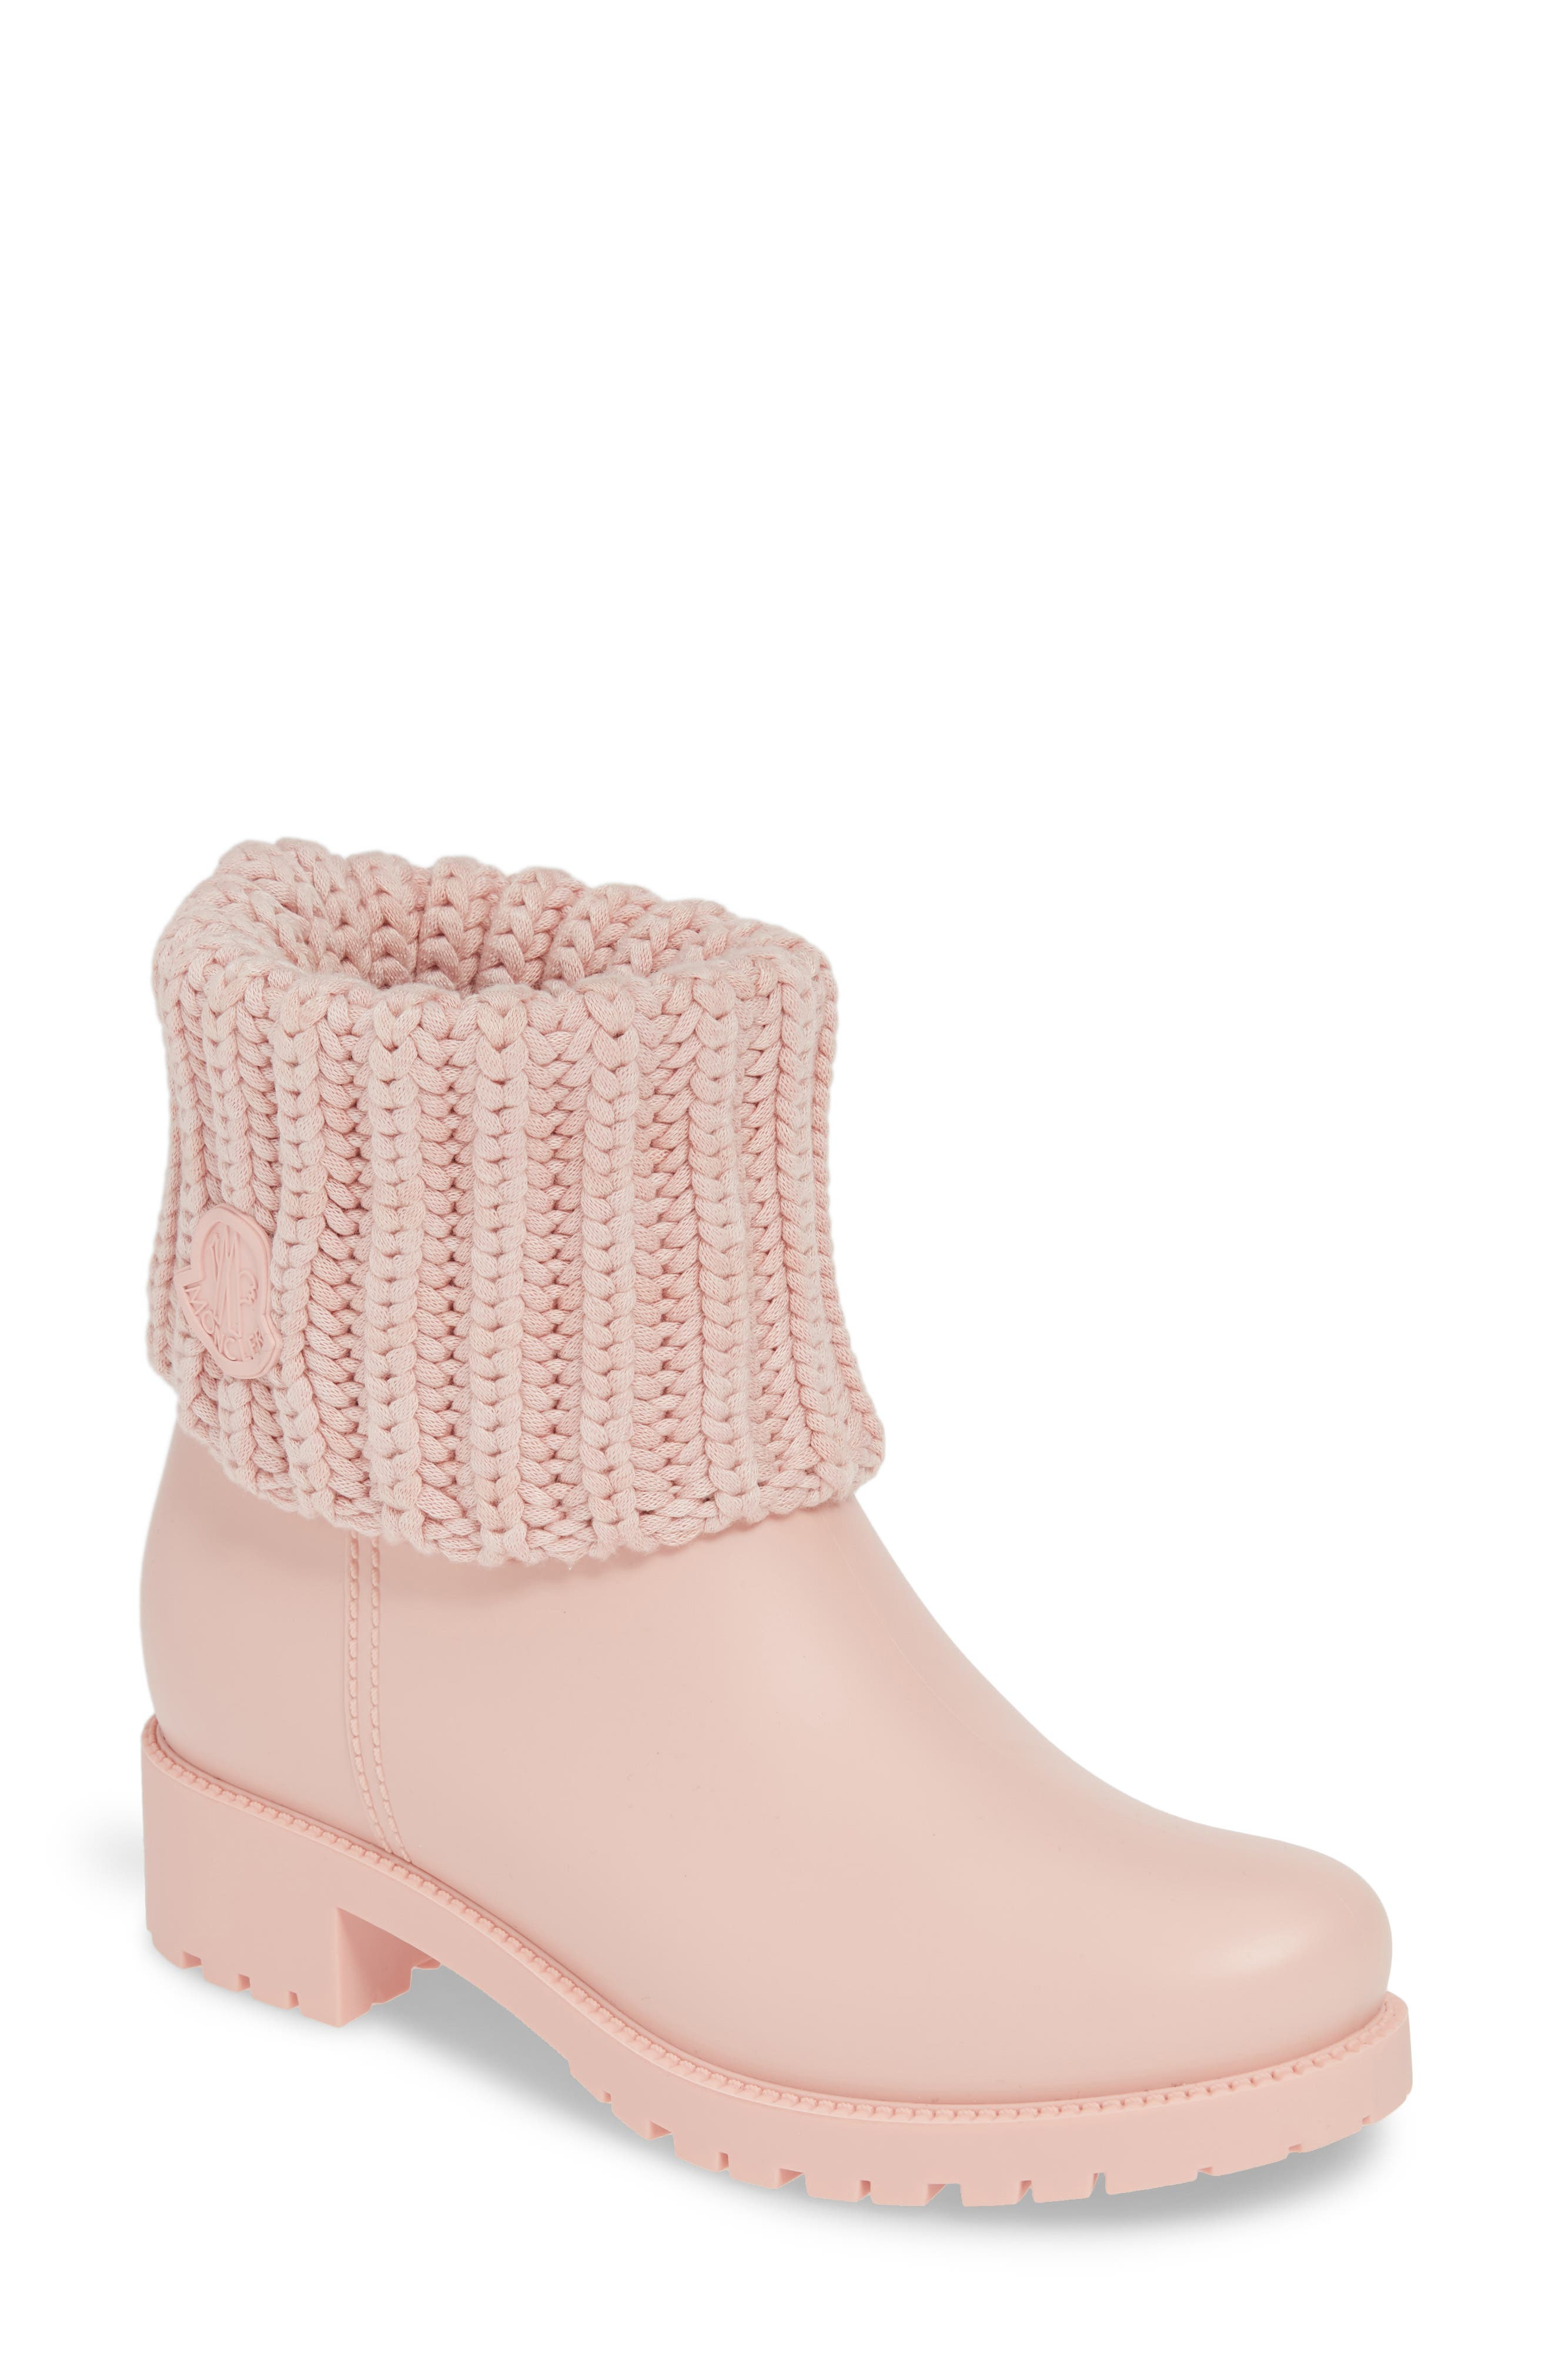 Moncler Ginette Stivale Knit Cuff Water Resistant Rain Boot